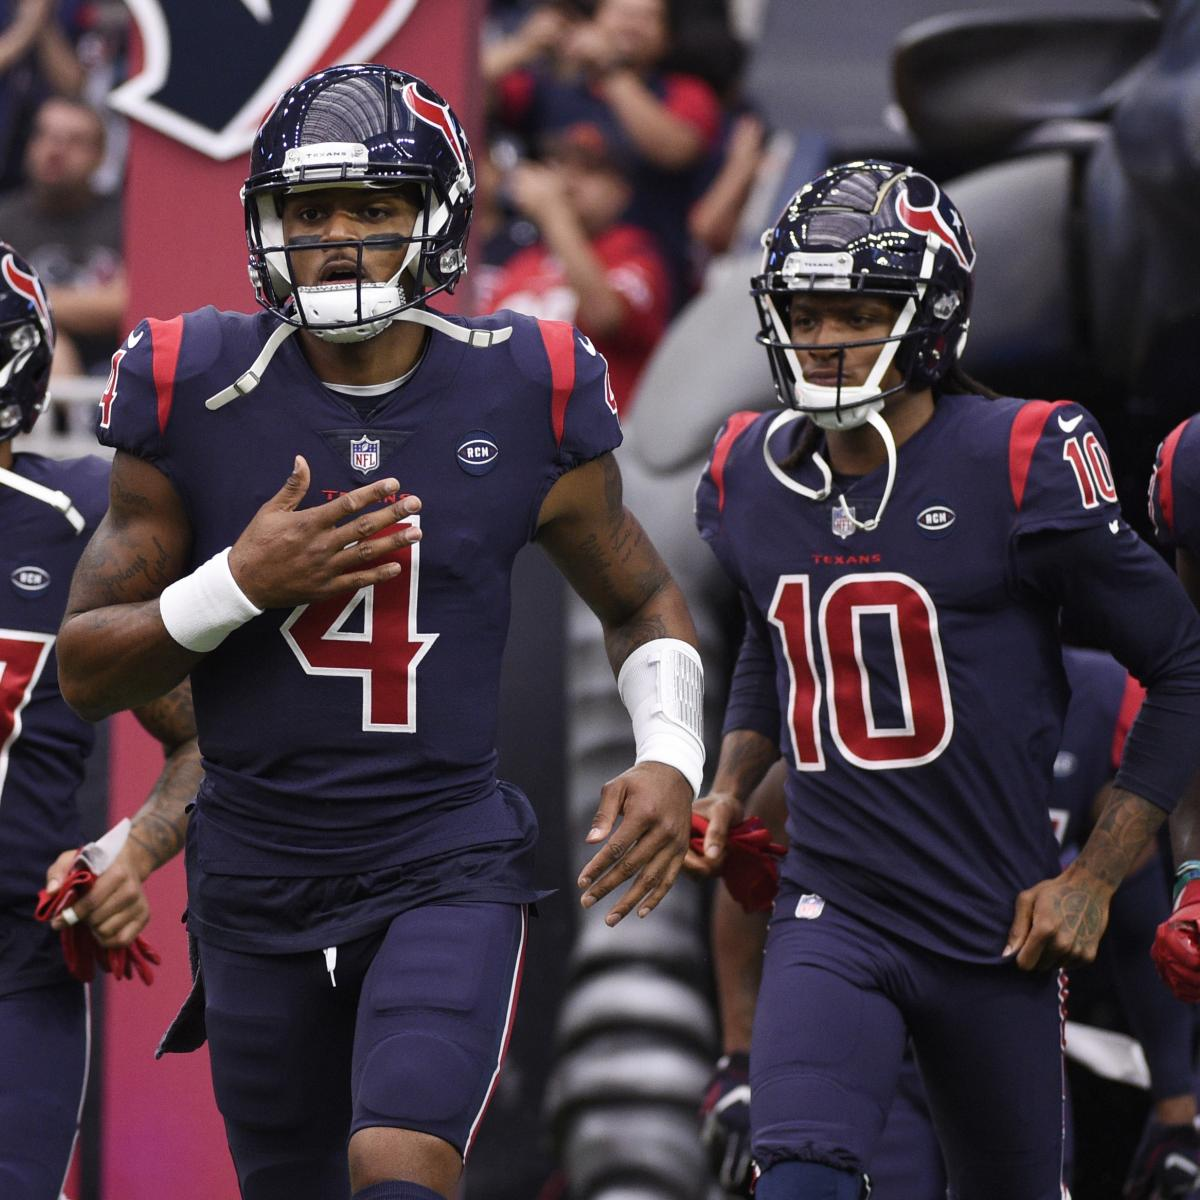 NFL Playoff Picture 2018: Week 14 Standings, Super Bowl